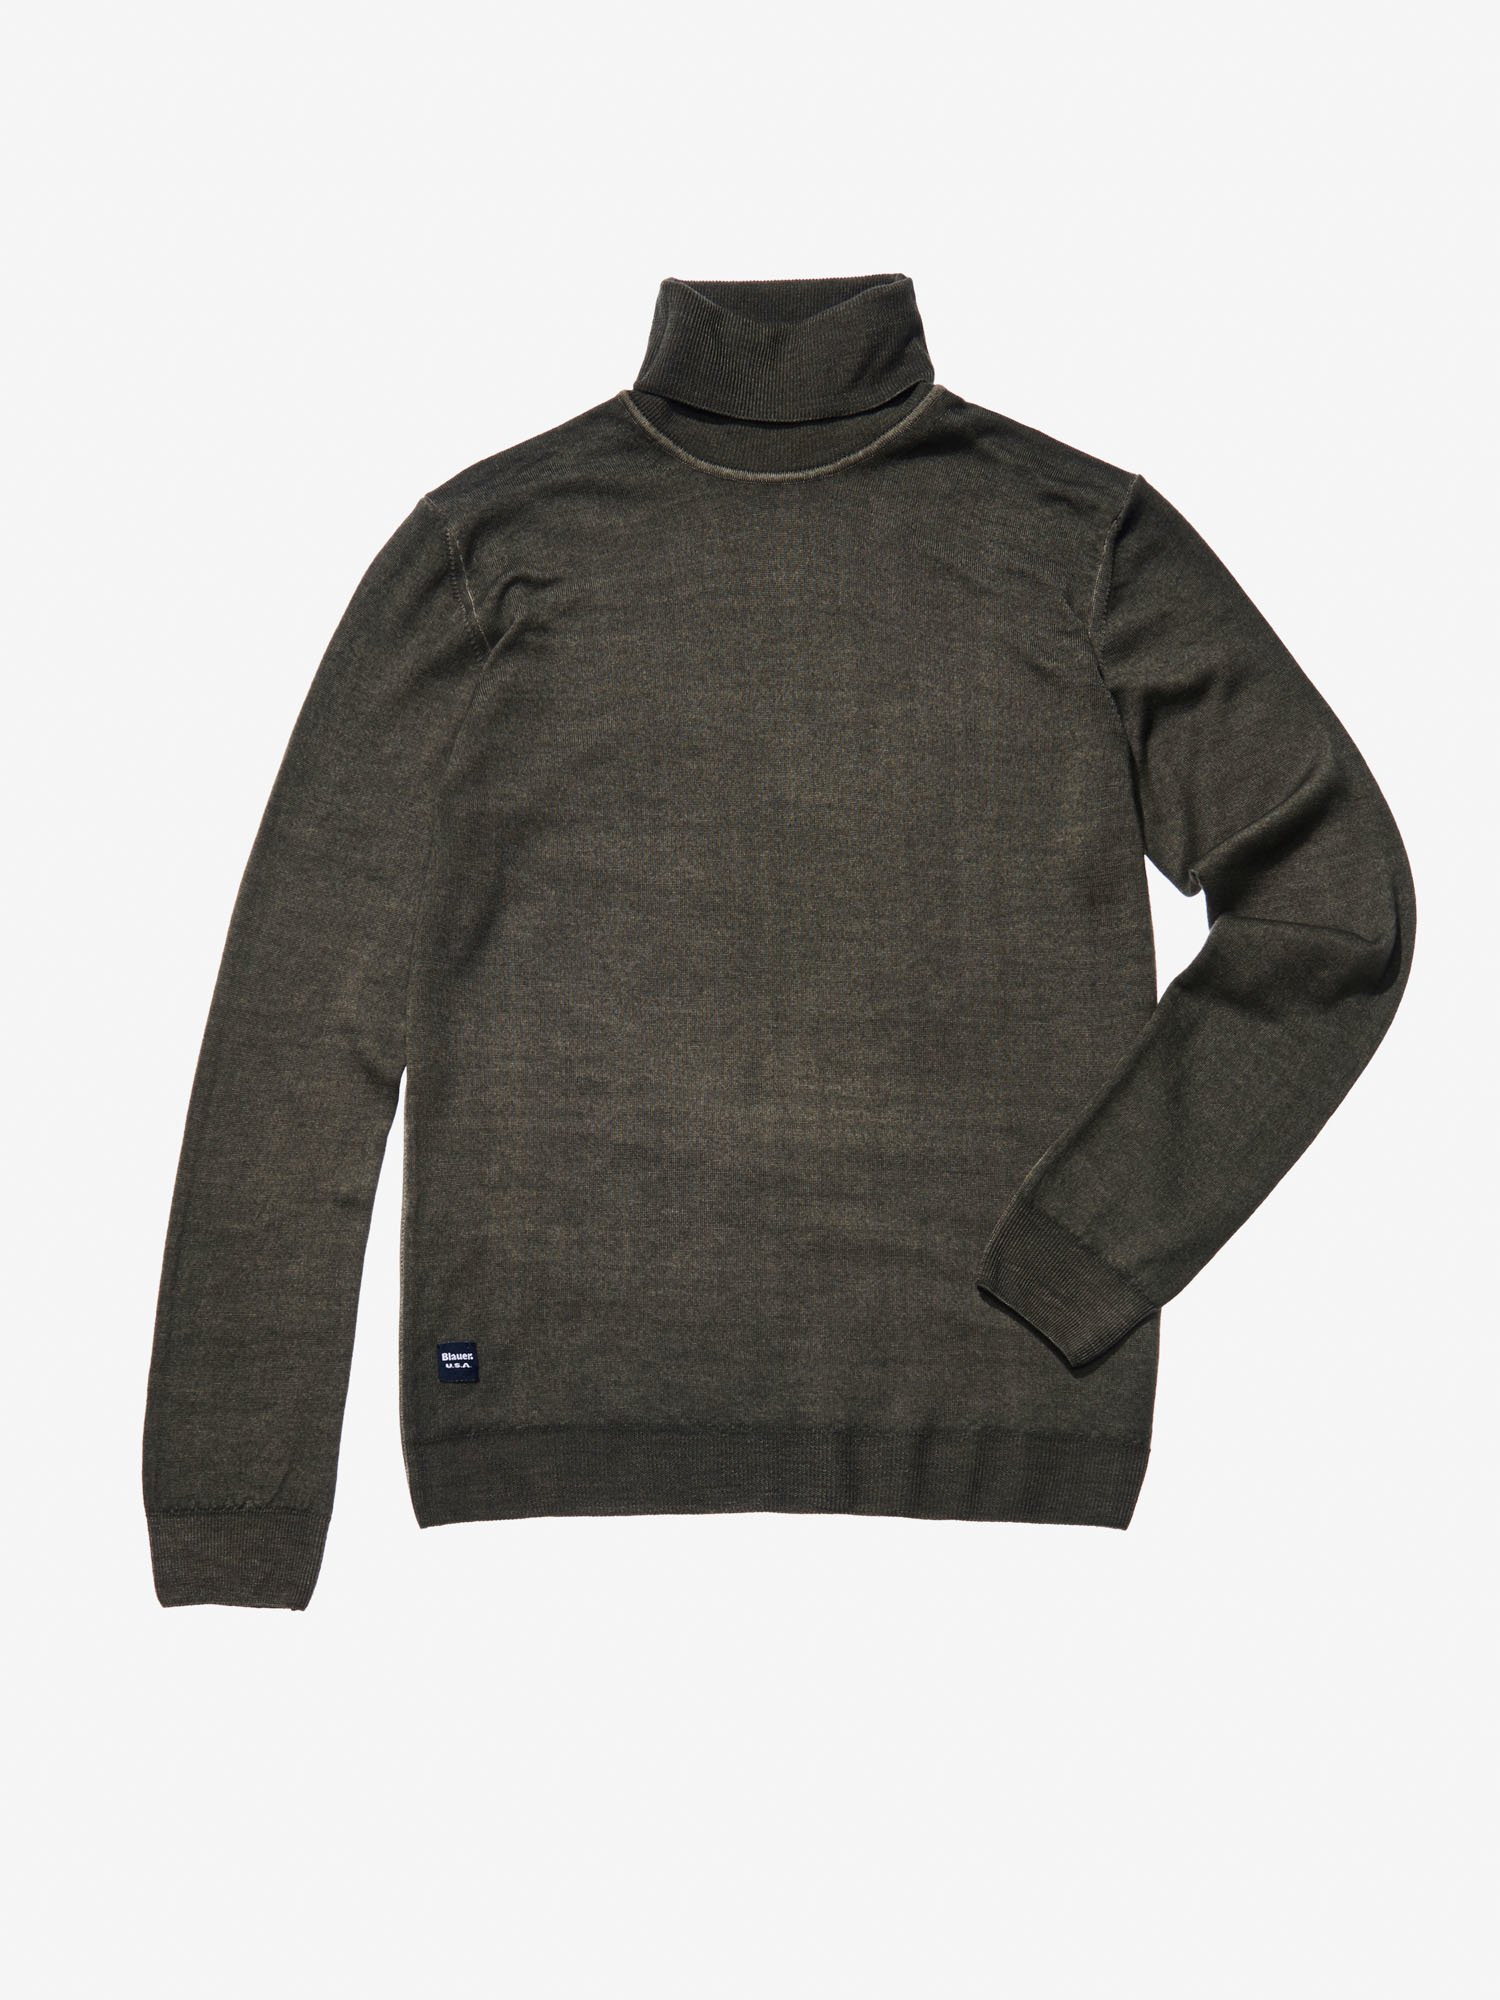 Blauer - STOCKING STITCH KNIT WOOL TURTLENECK - Barley Coffe - Blauer